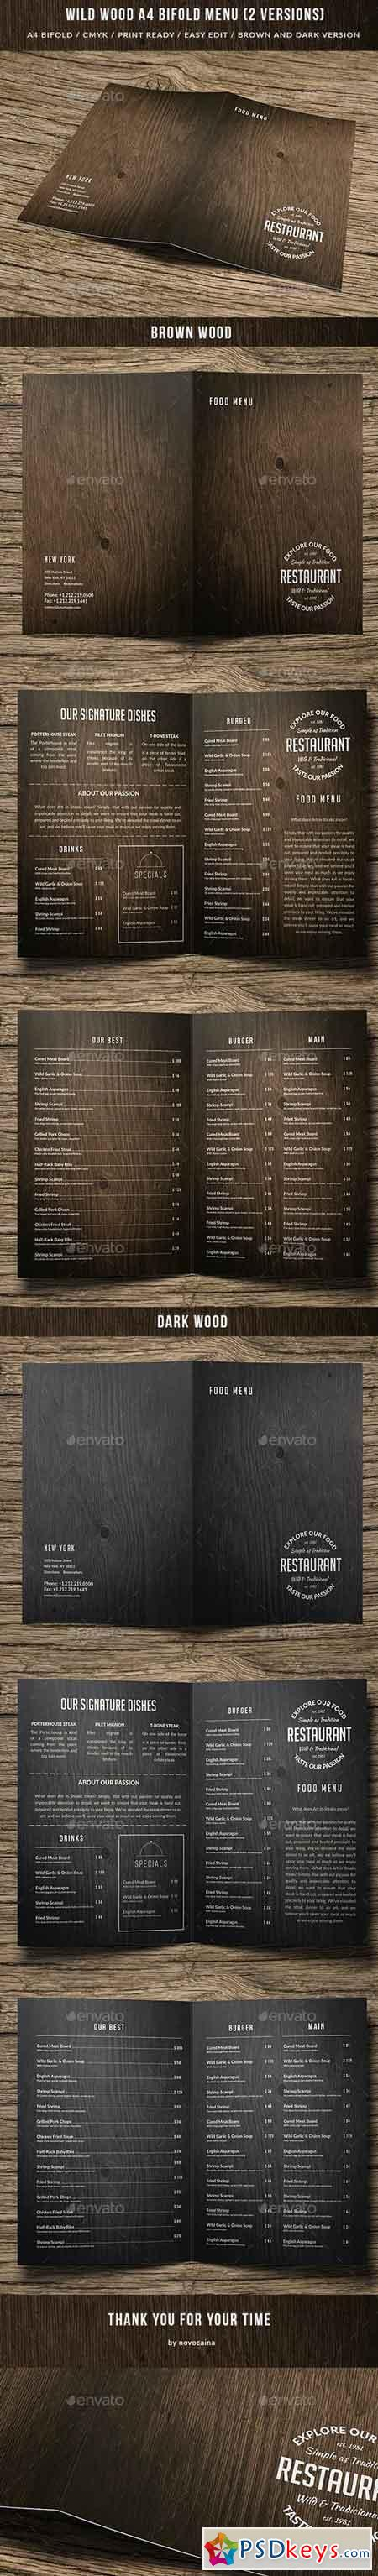 Wild Wood A4 Bifold Menu - 2 Color Versions 15645295